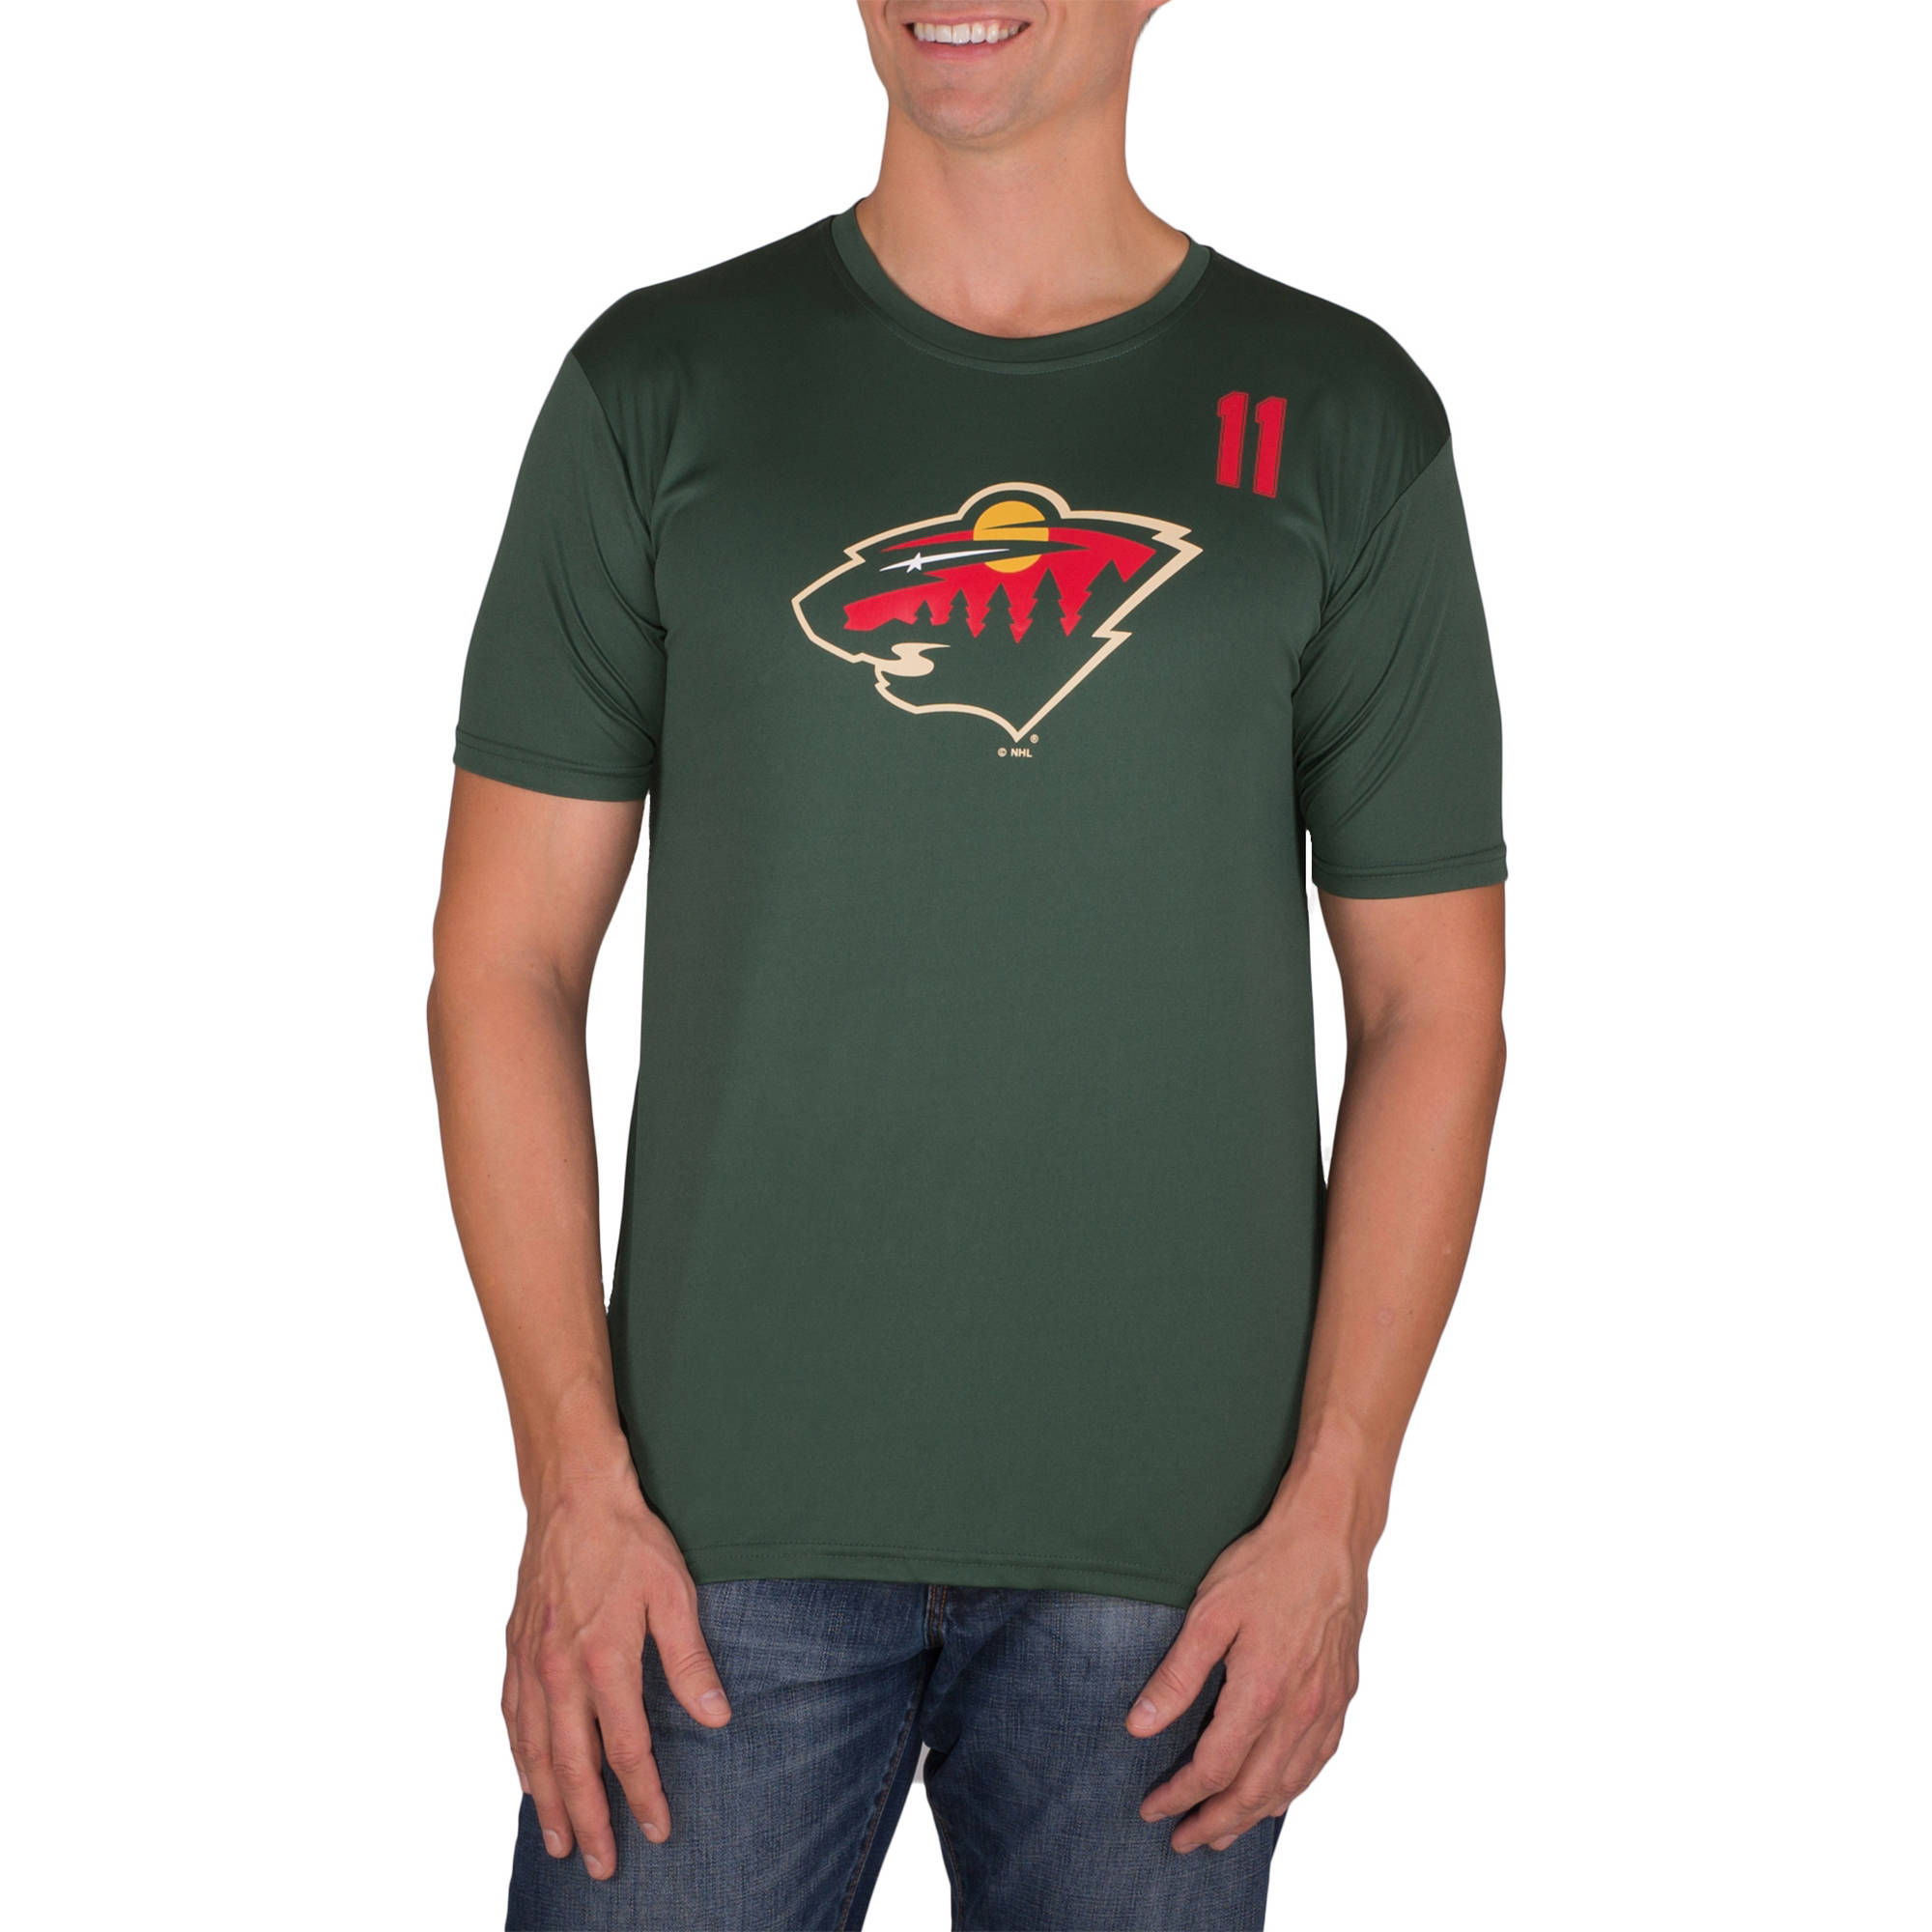 NHL Minnesota Wild Zach Parise 11 Men's Athletic-Fit Impact Tee Shirt